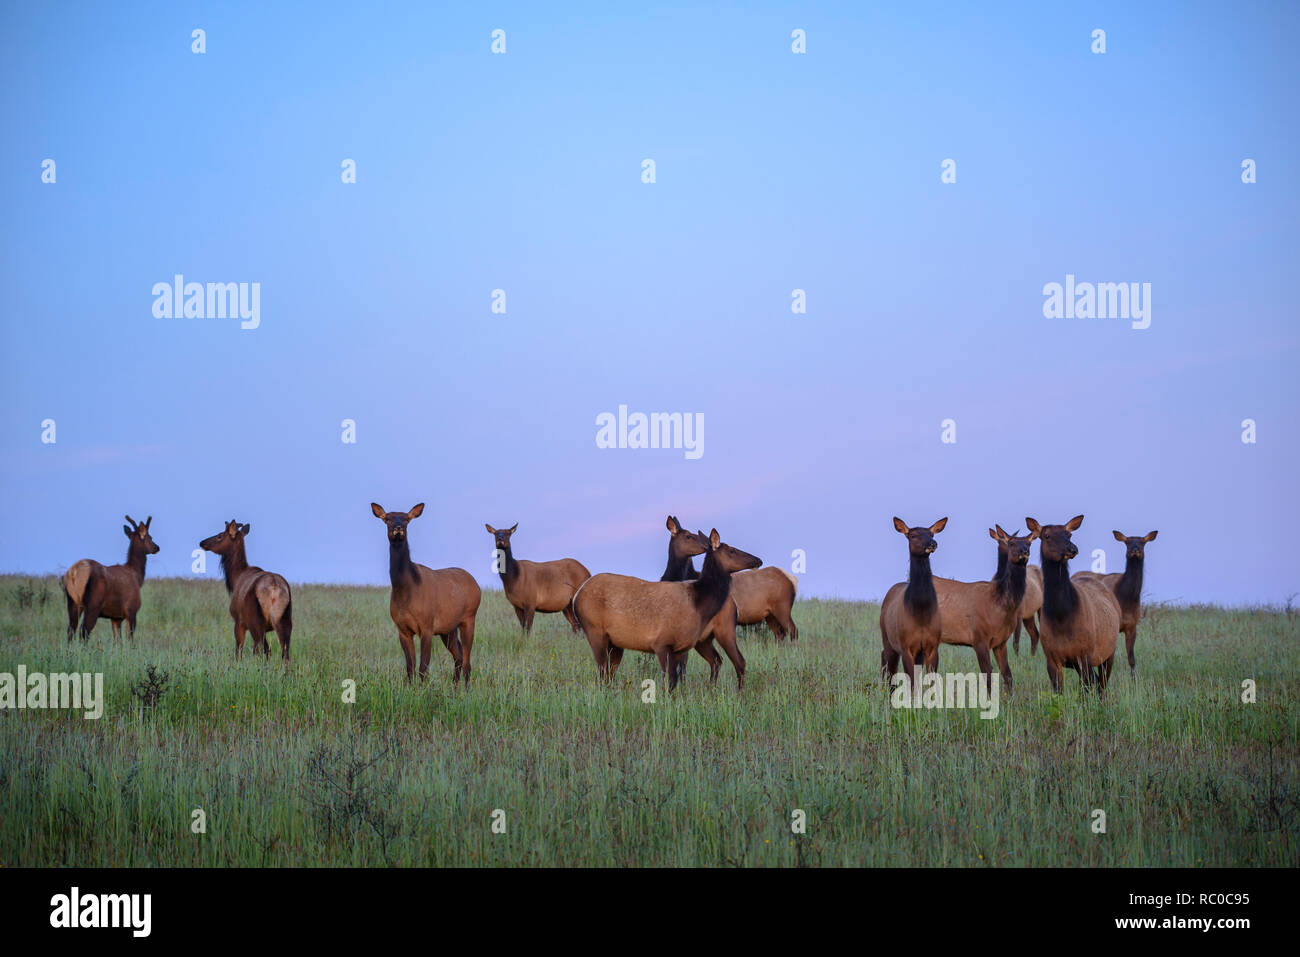 Roosevelt Elk in prairie at Bald Hills Road, Redwoods National and State Parks, California. - Stock Image